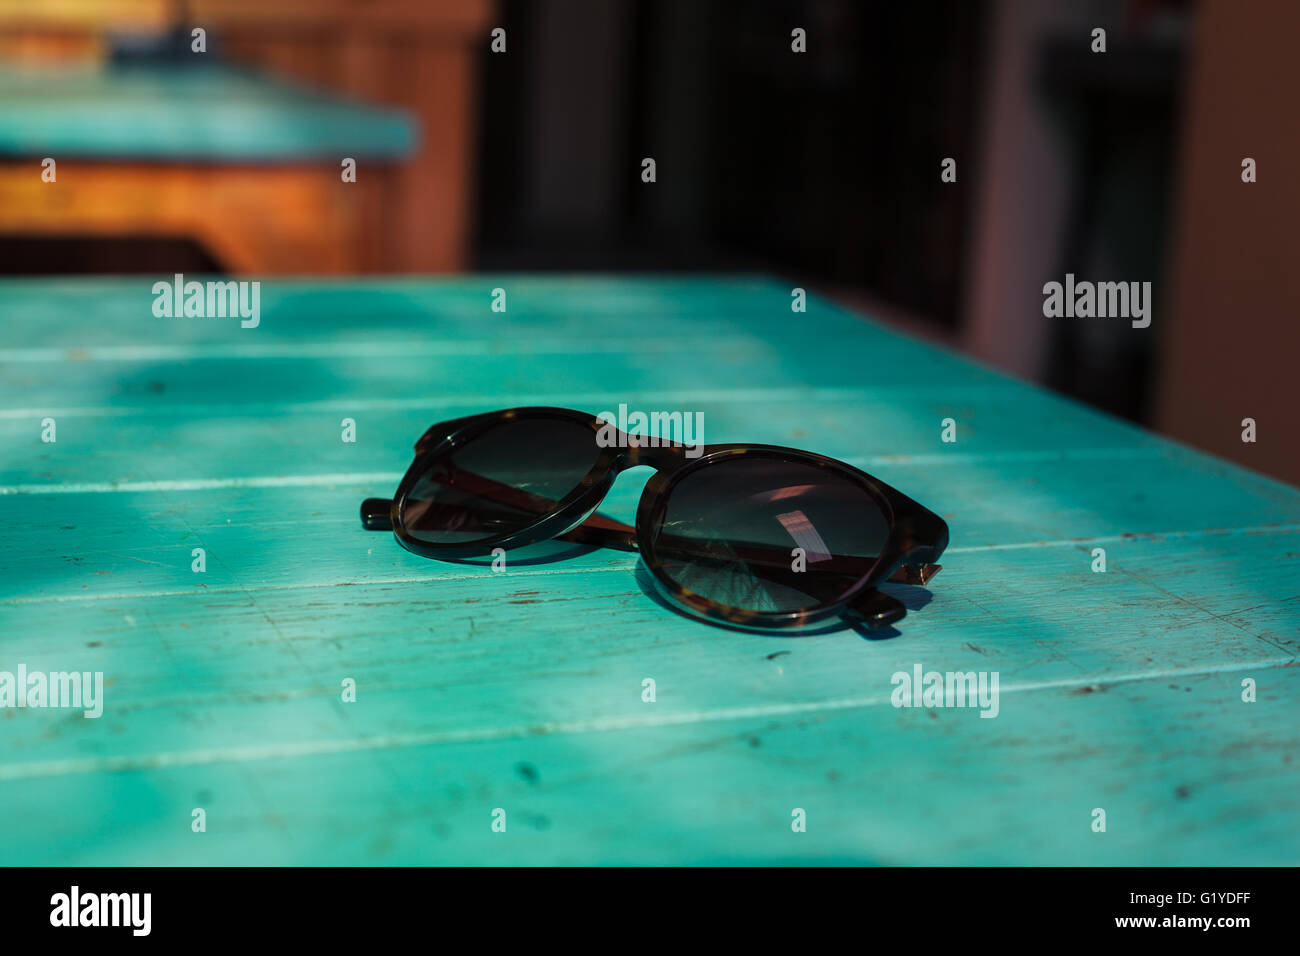 A pair of sunglasses on a blue table in the sunlight - Stock Image